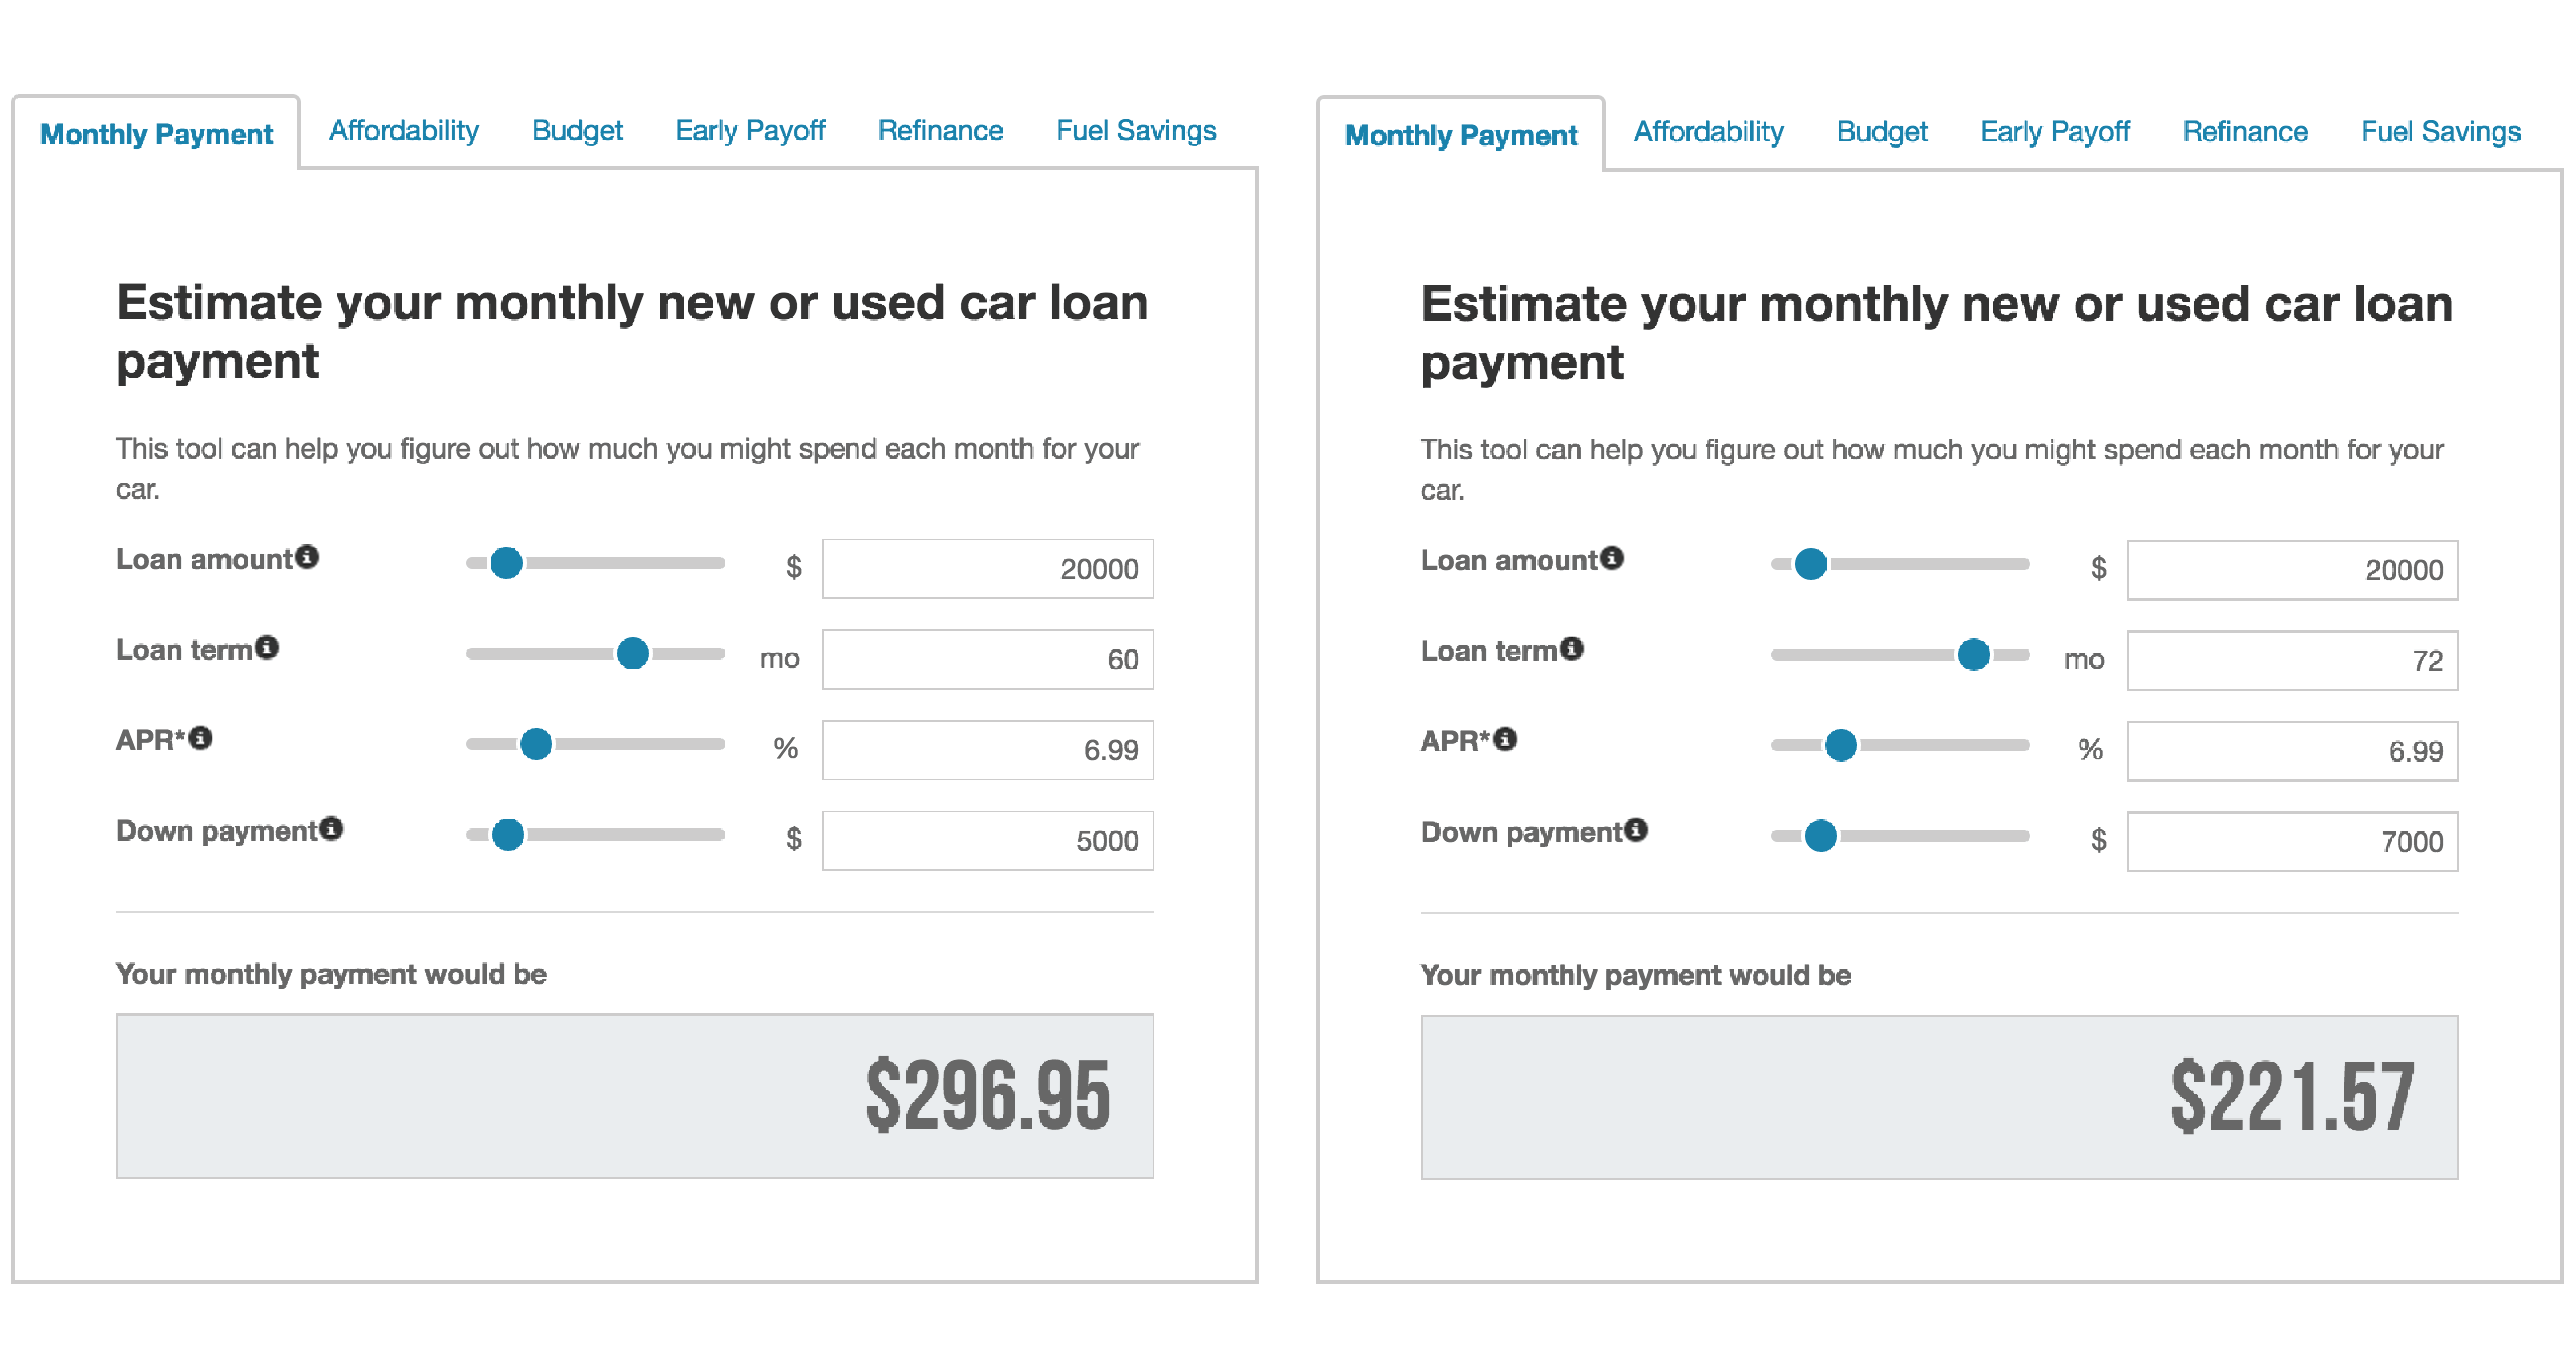 Estimating your monthly car loan payment